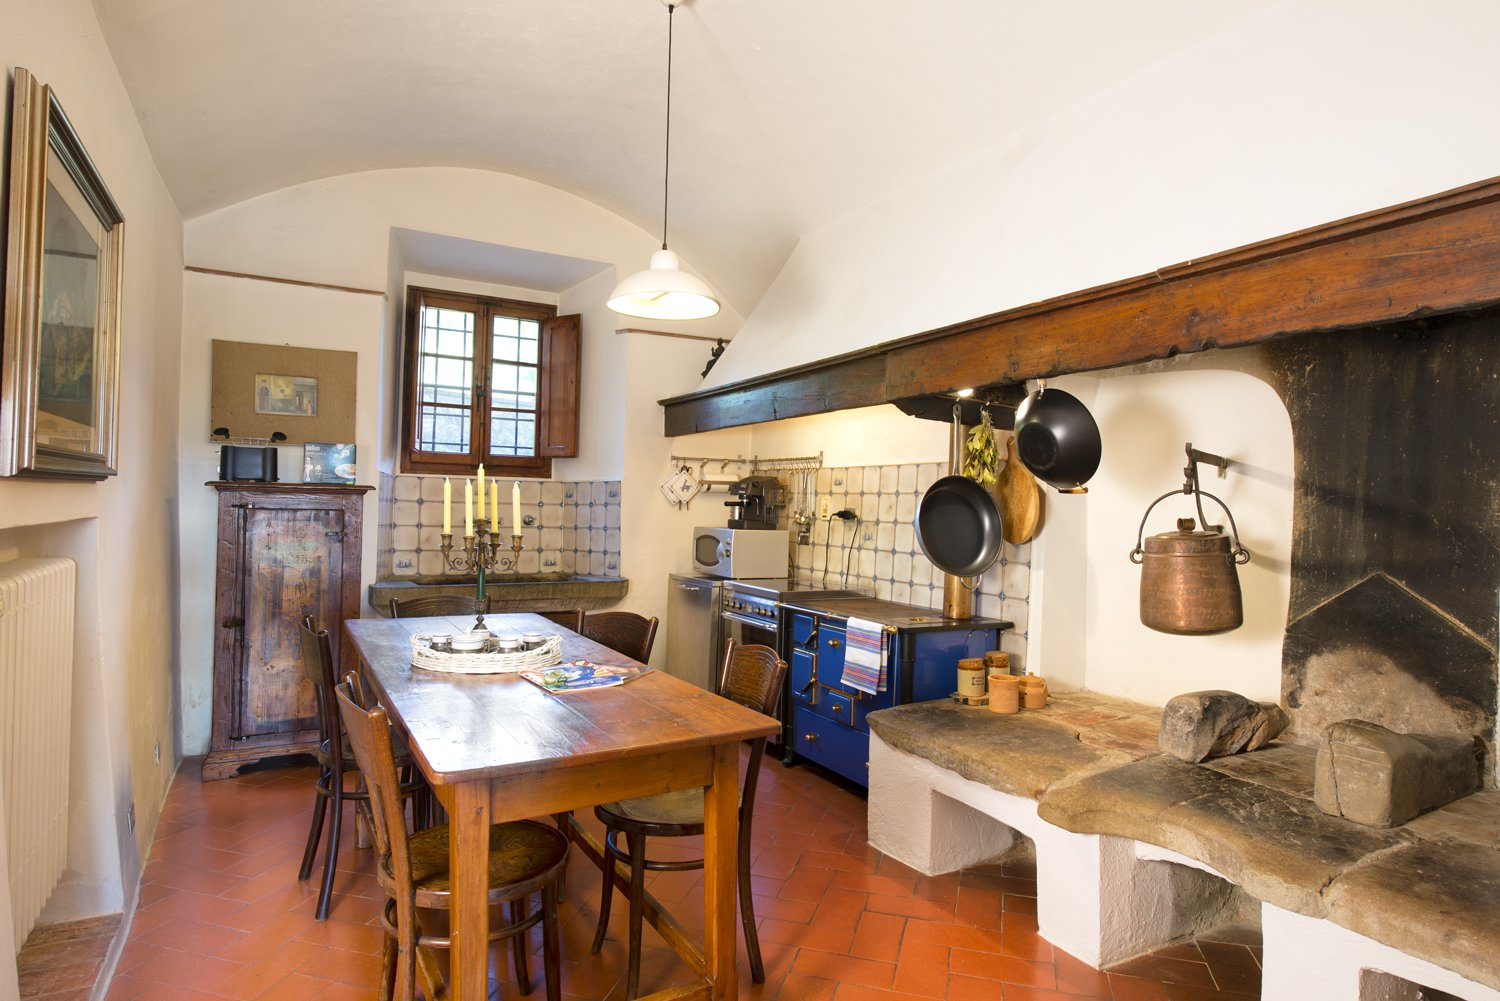 The kitchen features an original stone hearth and basin.